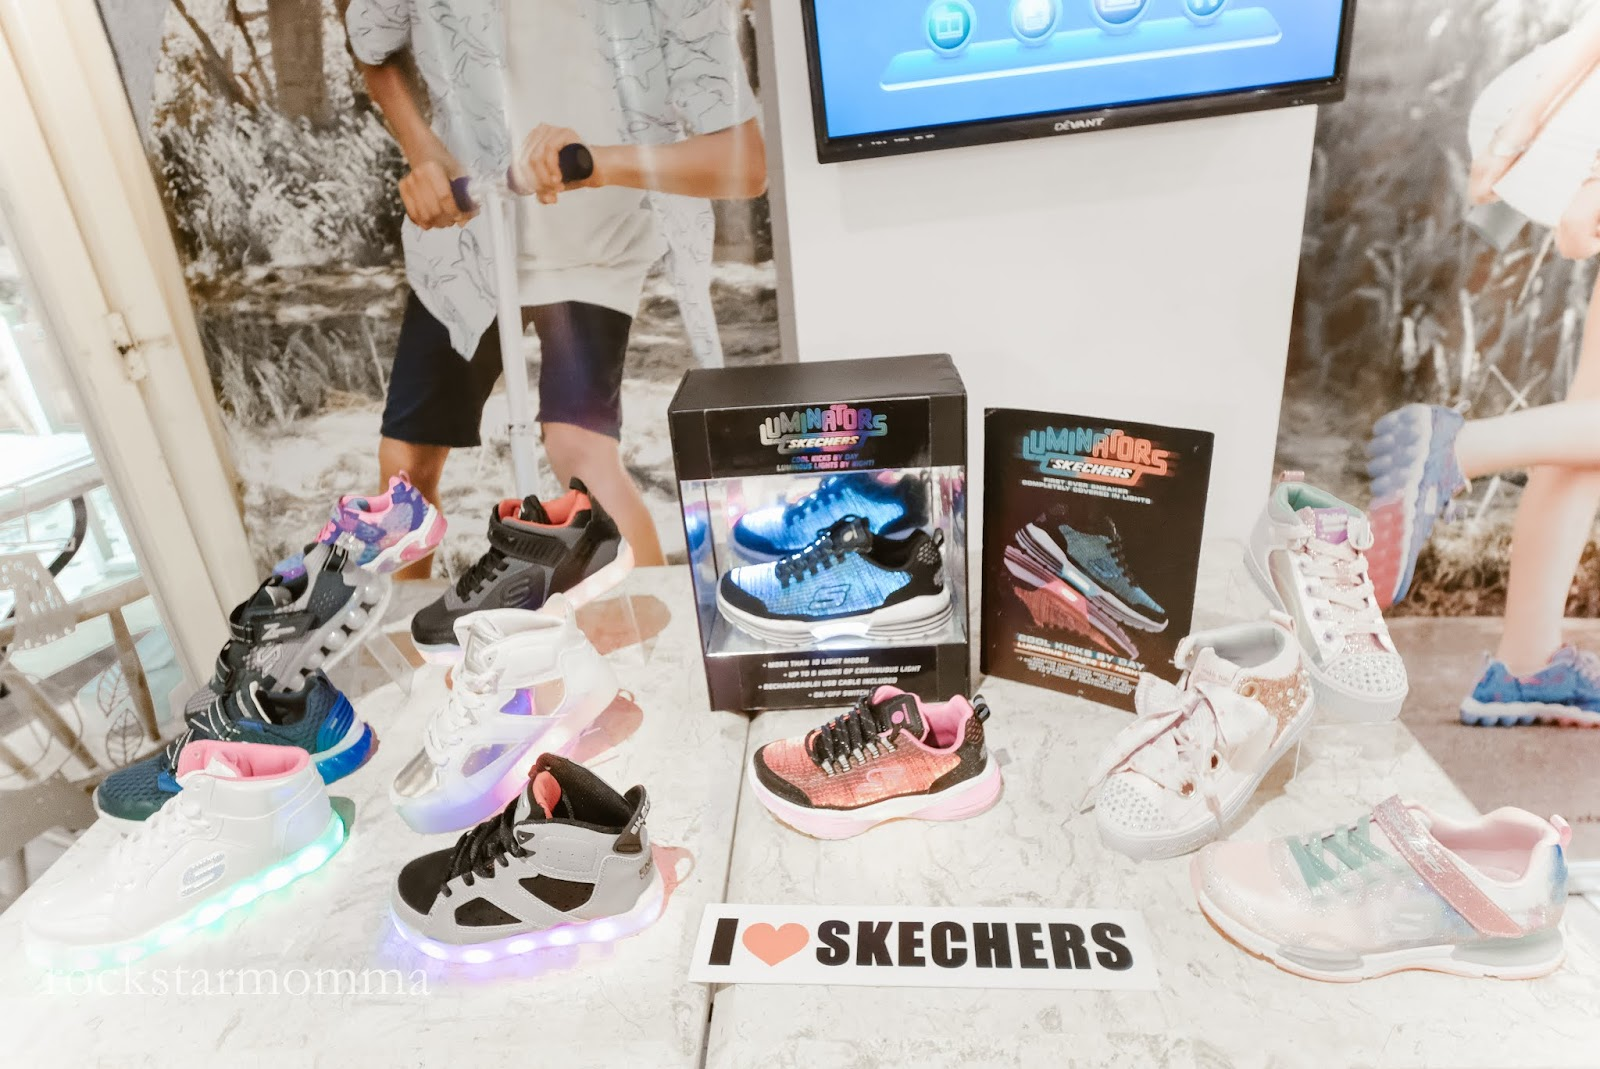 12a0602cf59 Skechers Kids has a full selection of fun, stylish and cool hi-tech designs  from super girly and sparkly, to all-over lights, and sleek street styles,  ...